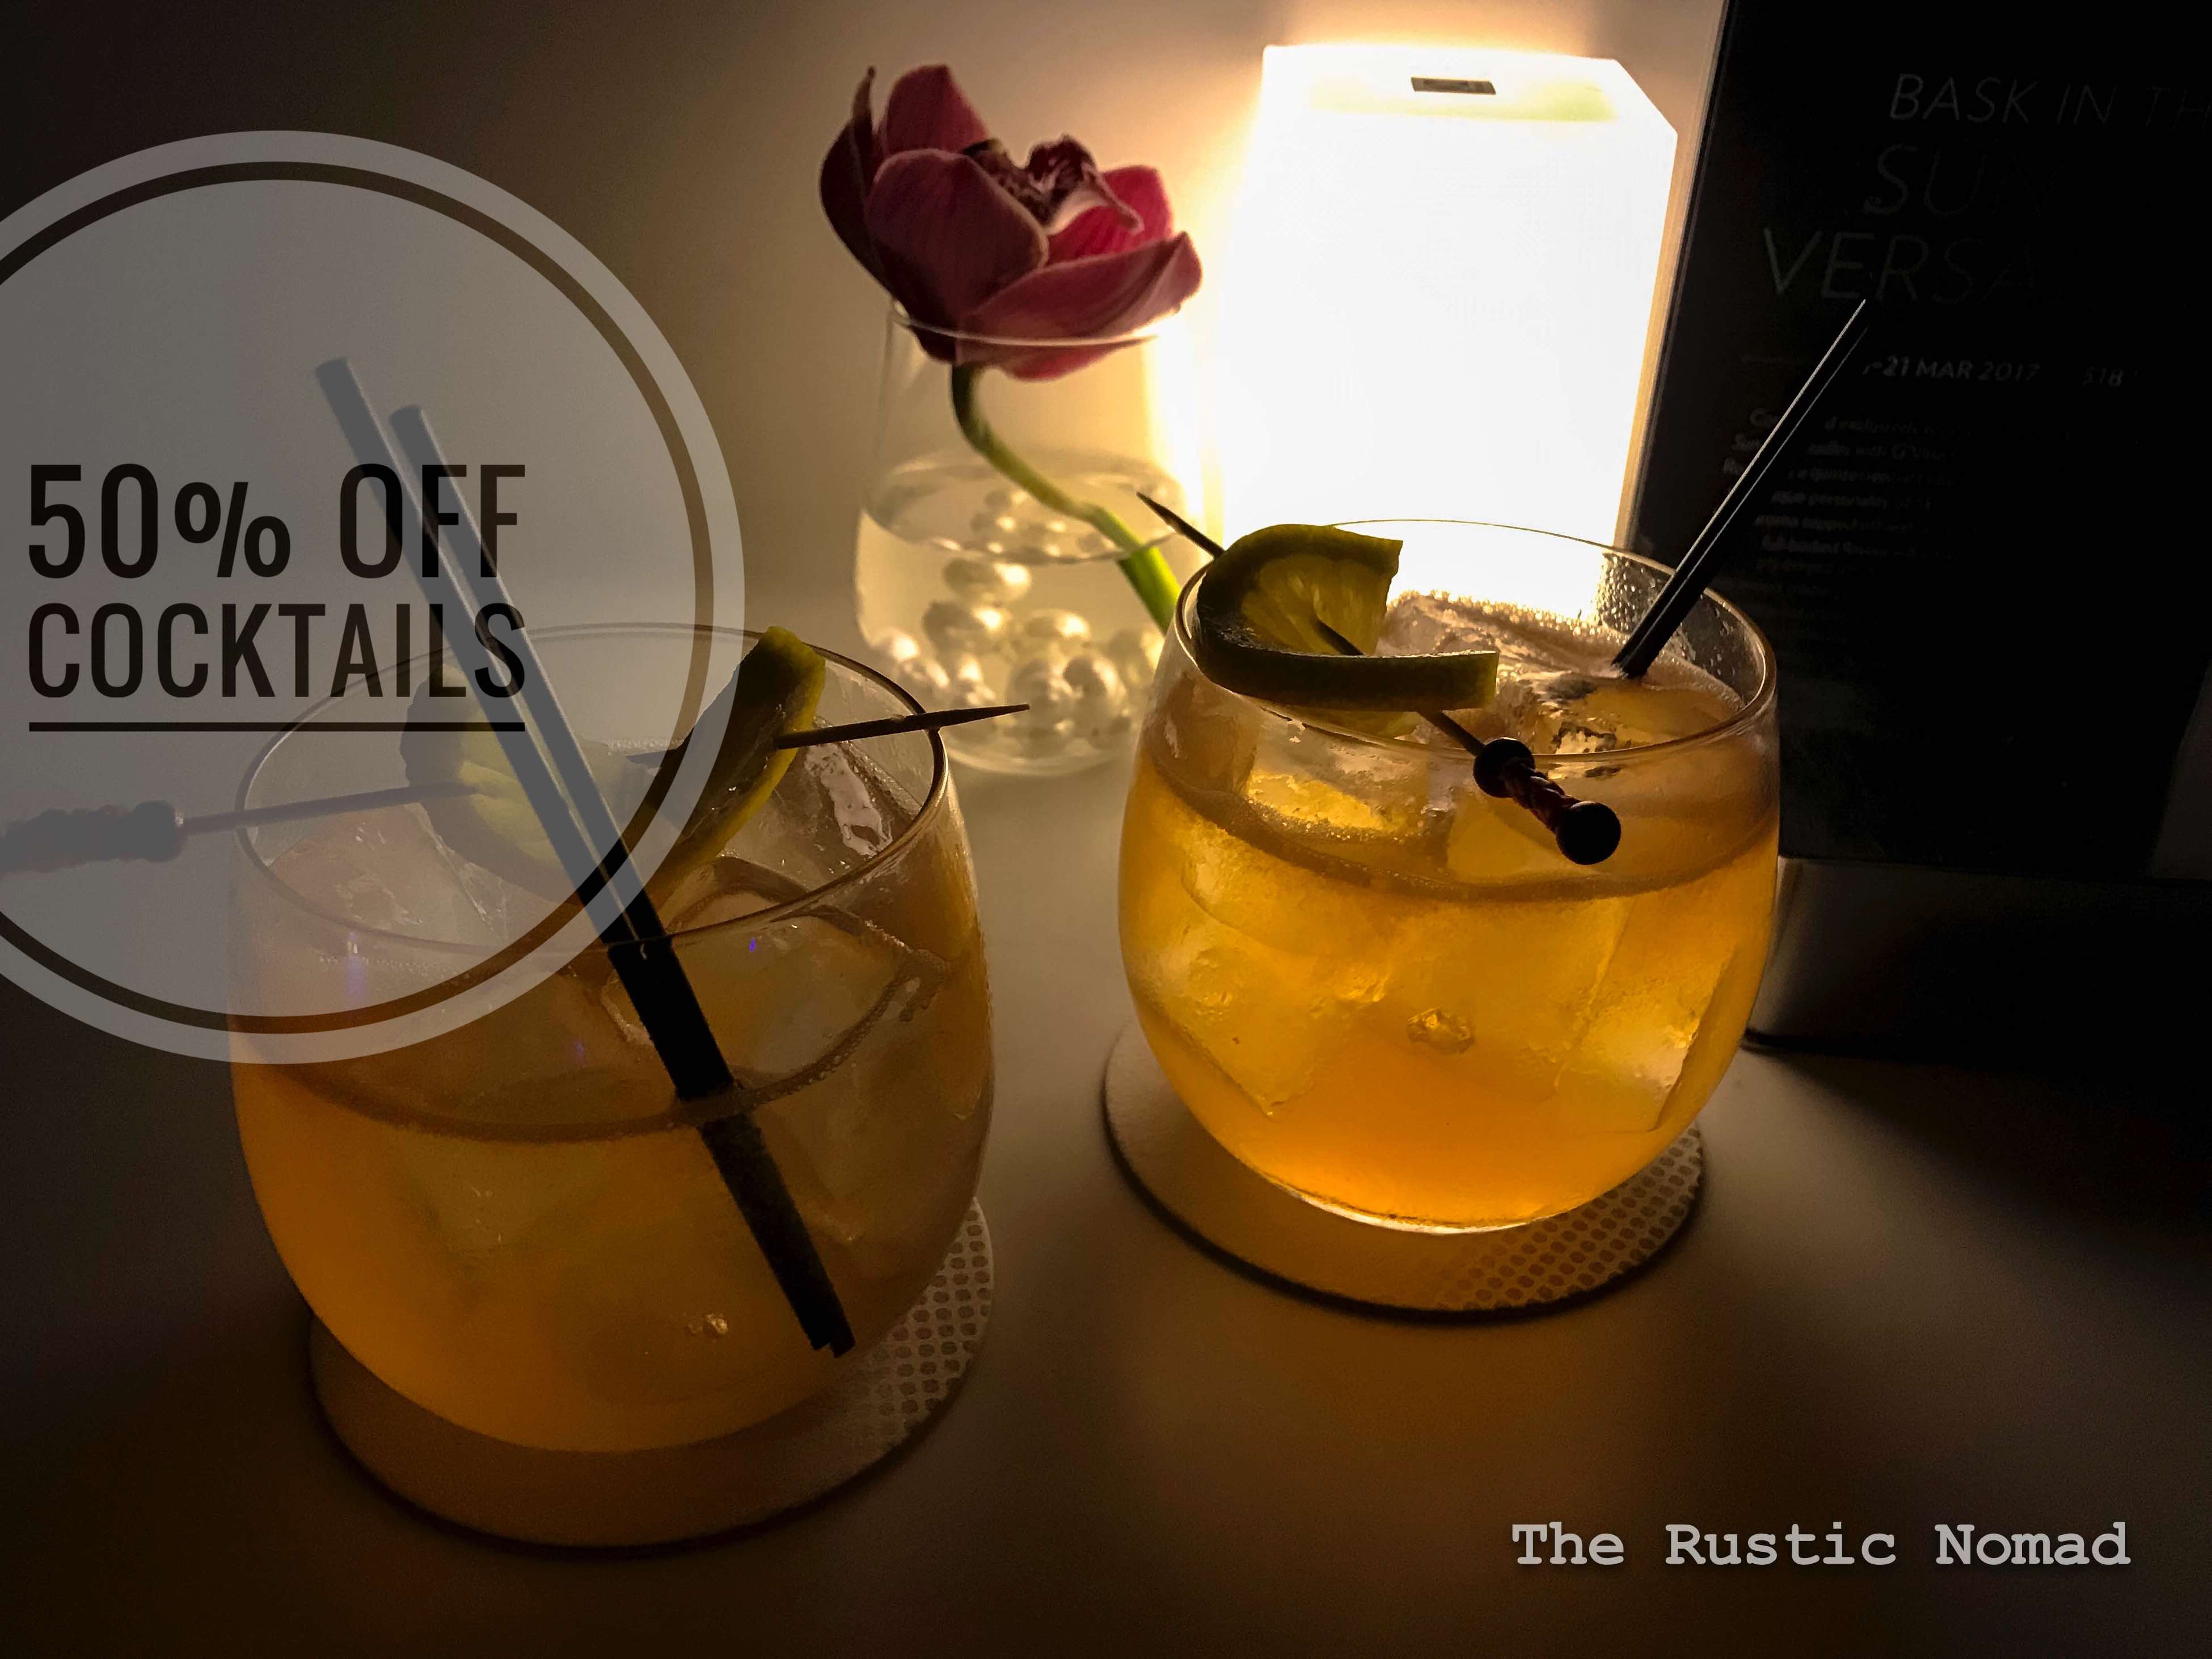 Nightlife in Singapore – Social Hour at Marina Bay Sands